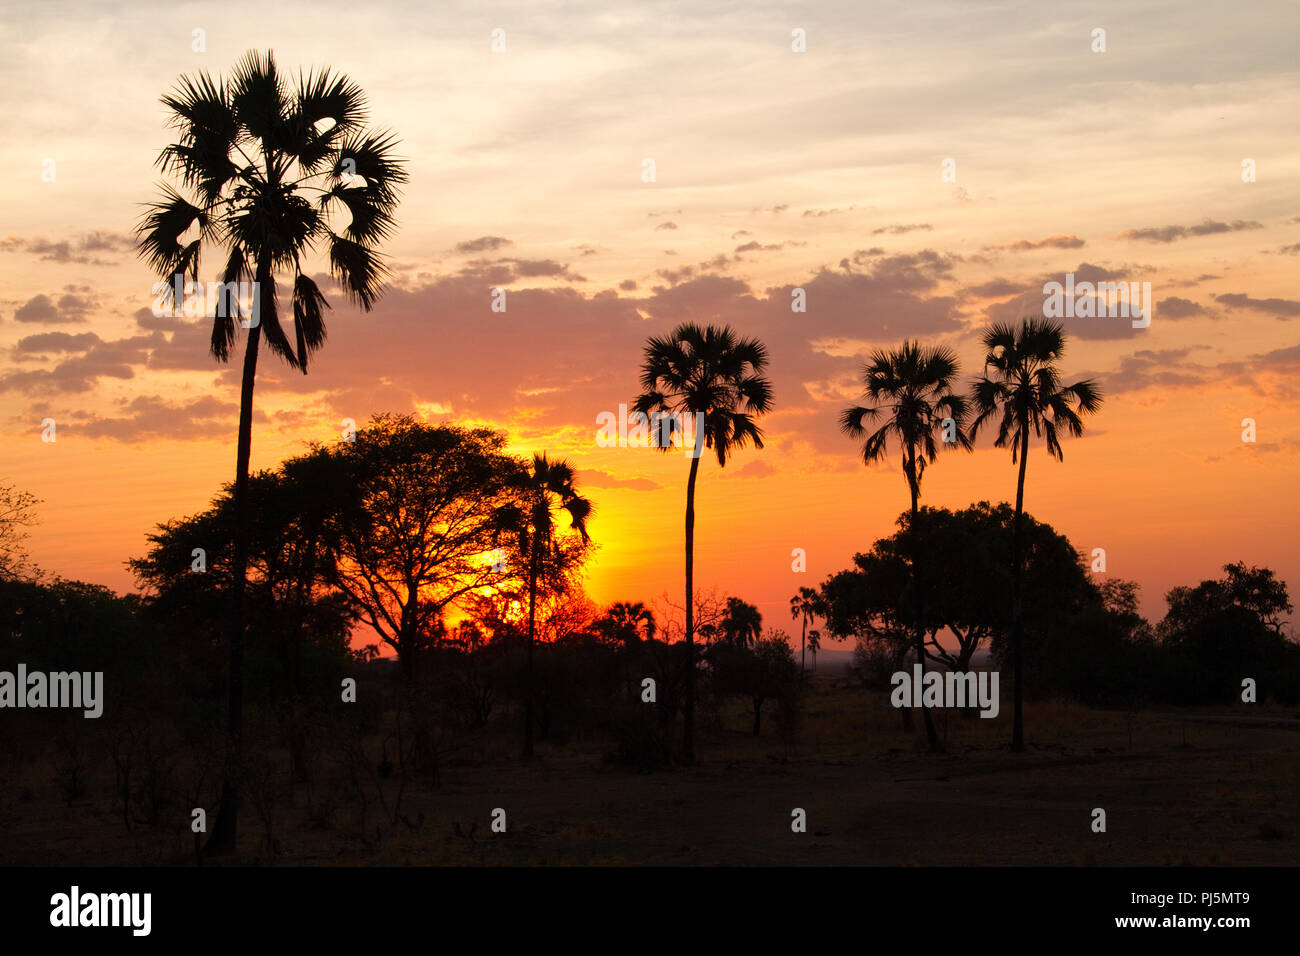 Sunset glow silhouettes fan palm trees during the dry season in Katavi National Park. Stock Photo